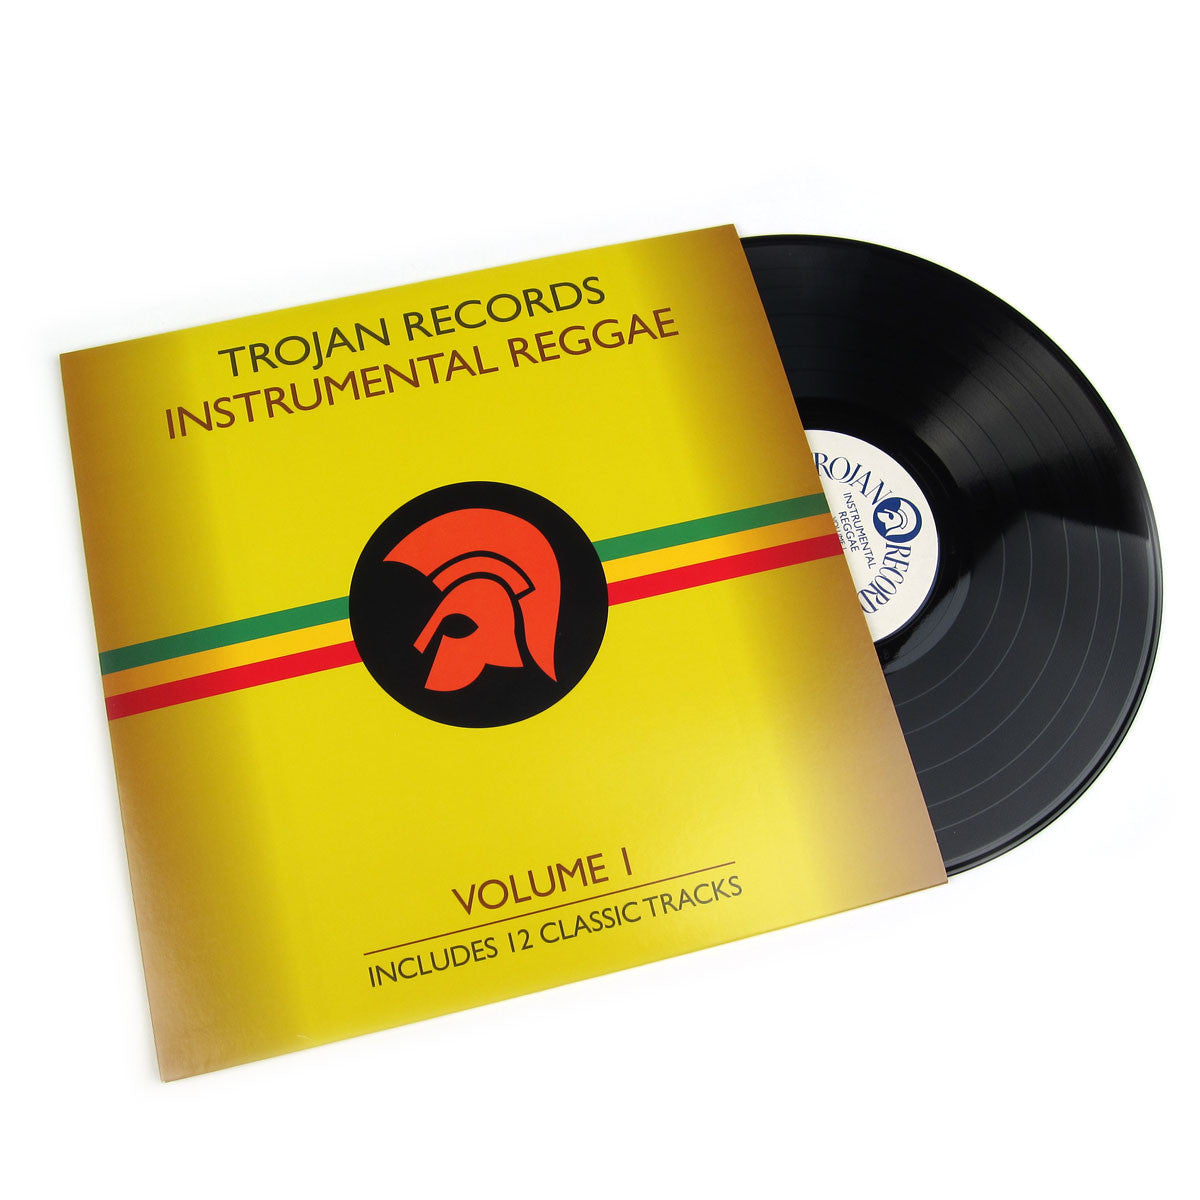 Trojan Records: Instrumental Reggae Volume 1 Vinyl LP